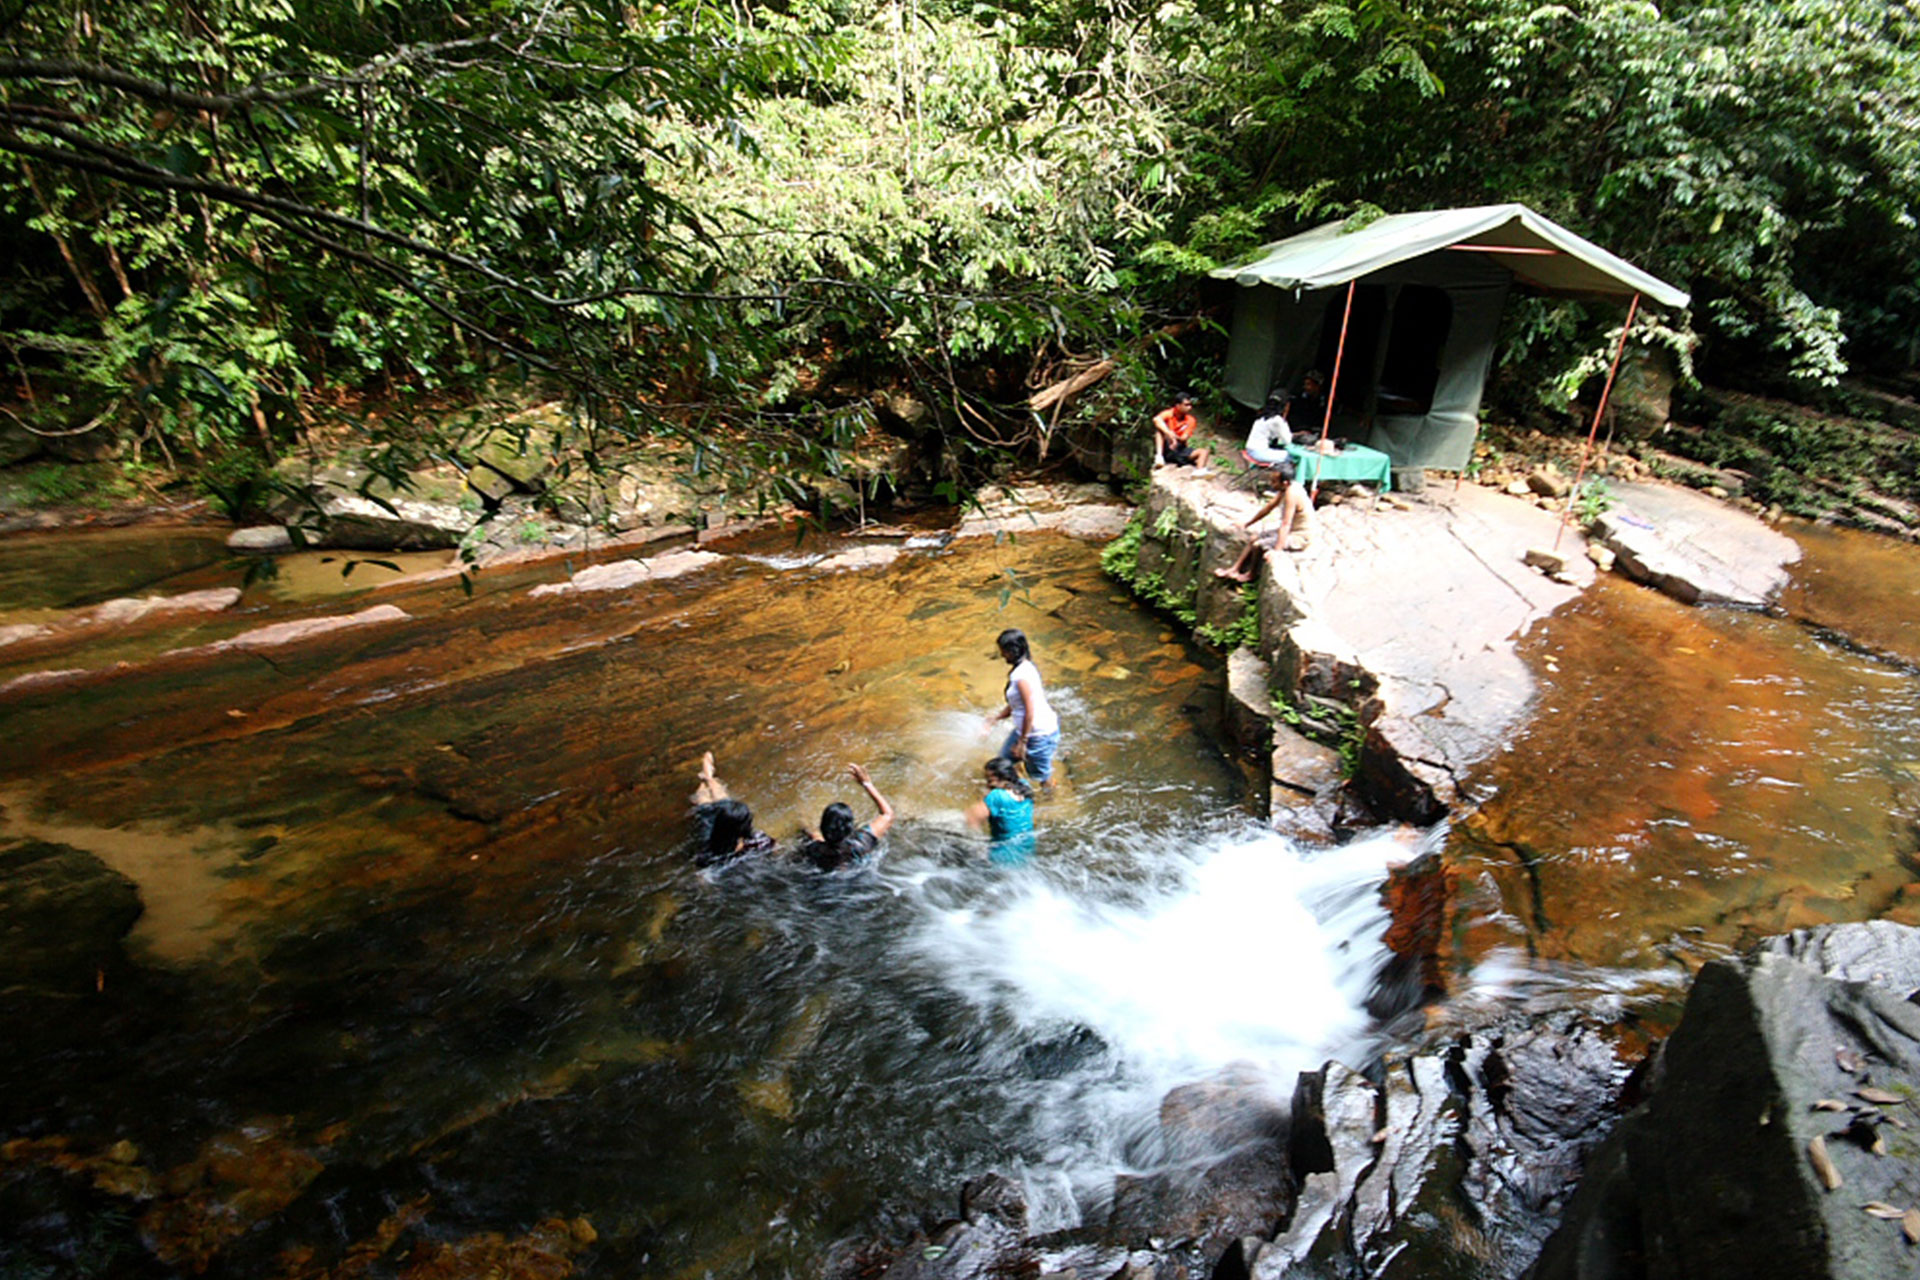 Rain Forest Tours in Sri Lanka - Rain Forest Camping - Sri Lanka Rain Forest Lodges - Rain Forest Camping Tours Sri Lanka